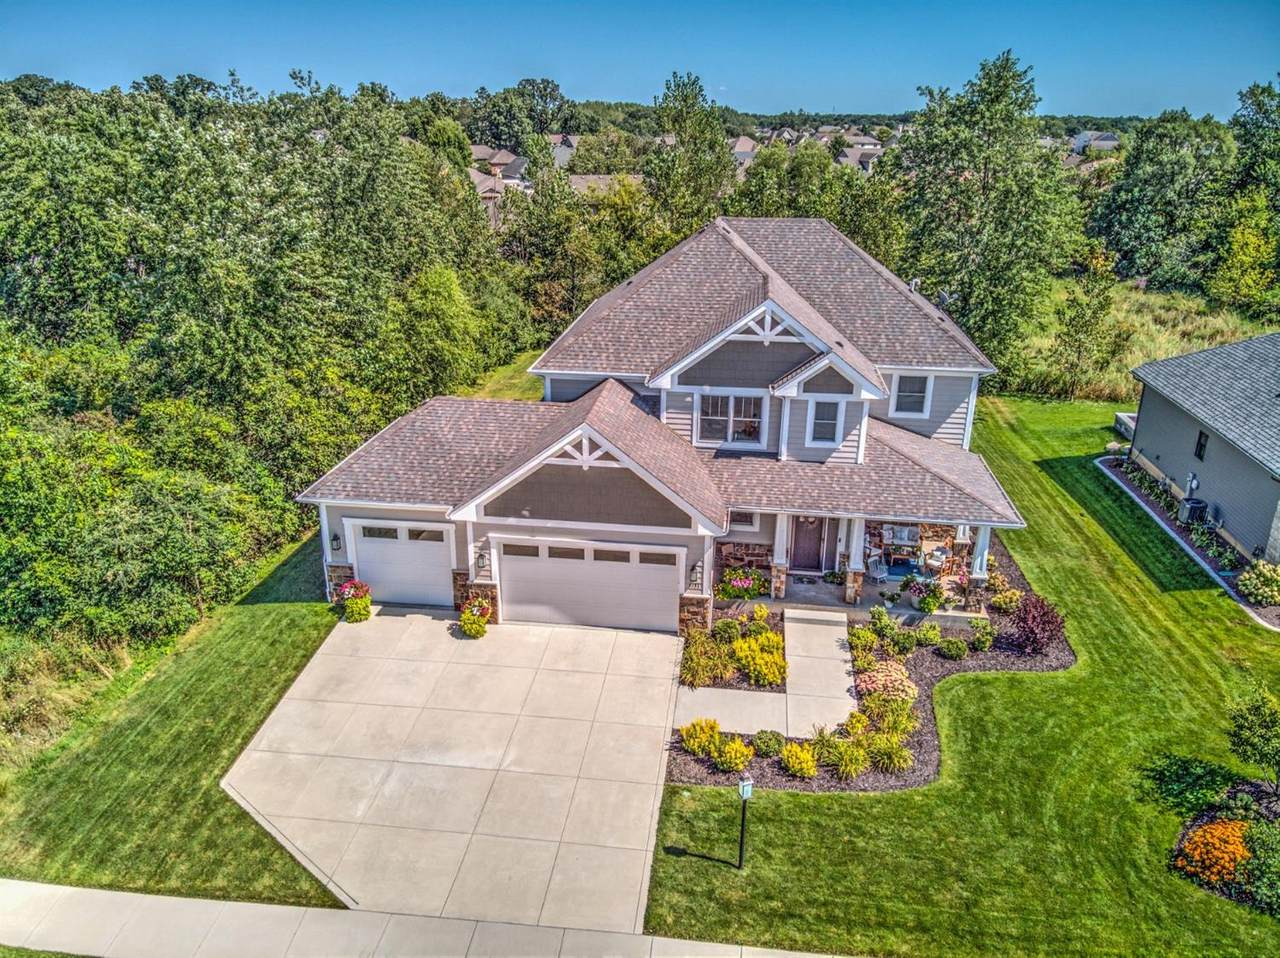 7151 Fawn Valley Drive - Photo 1